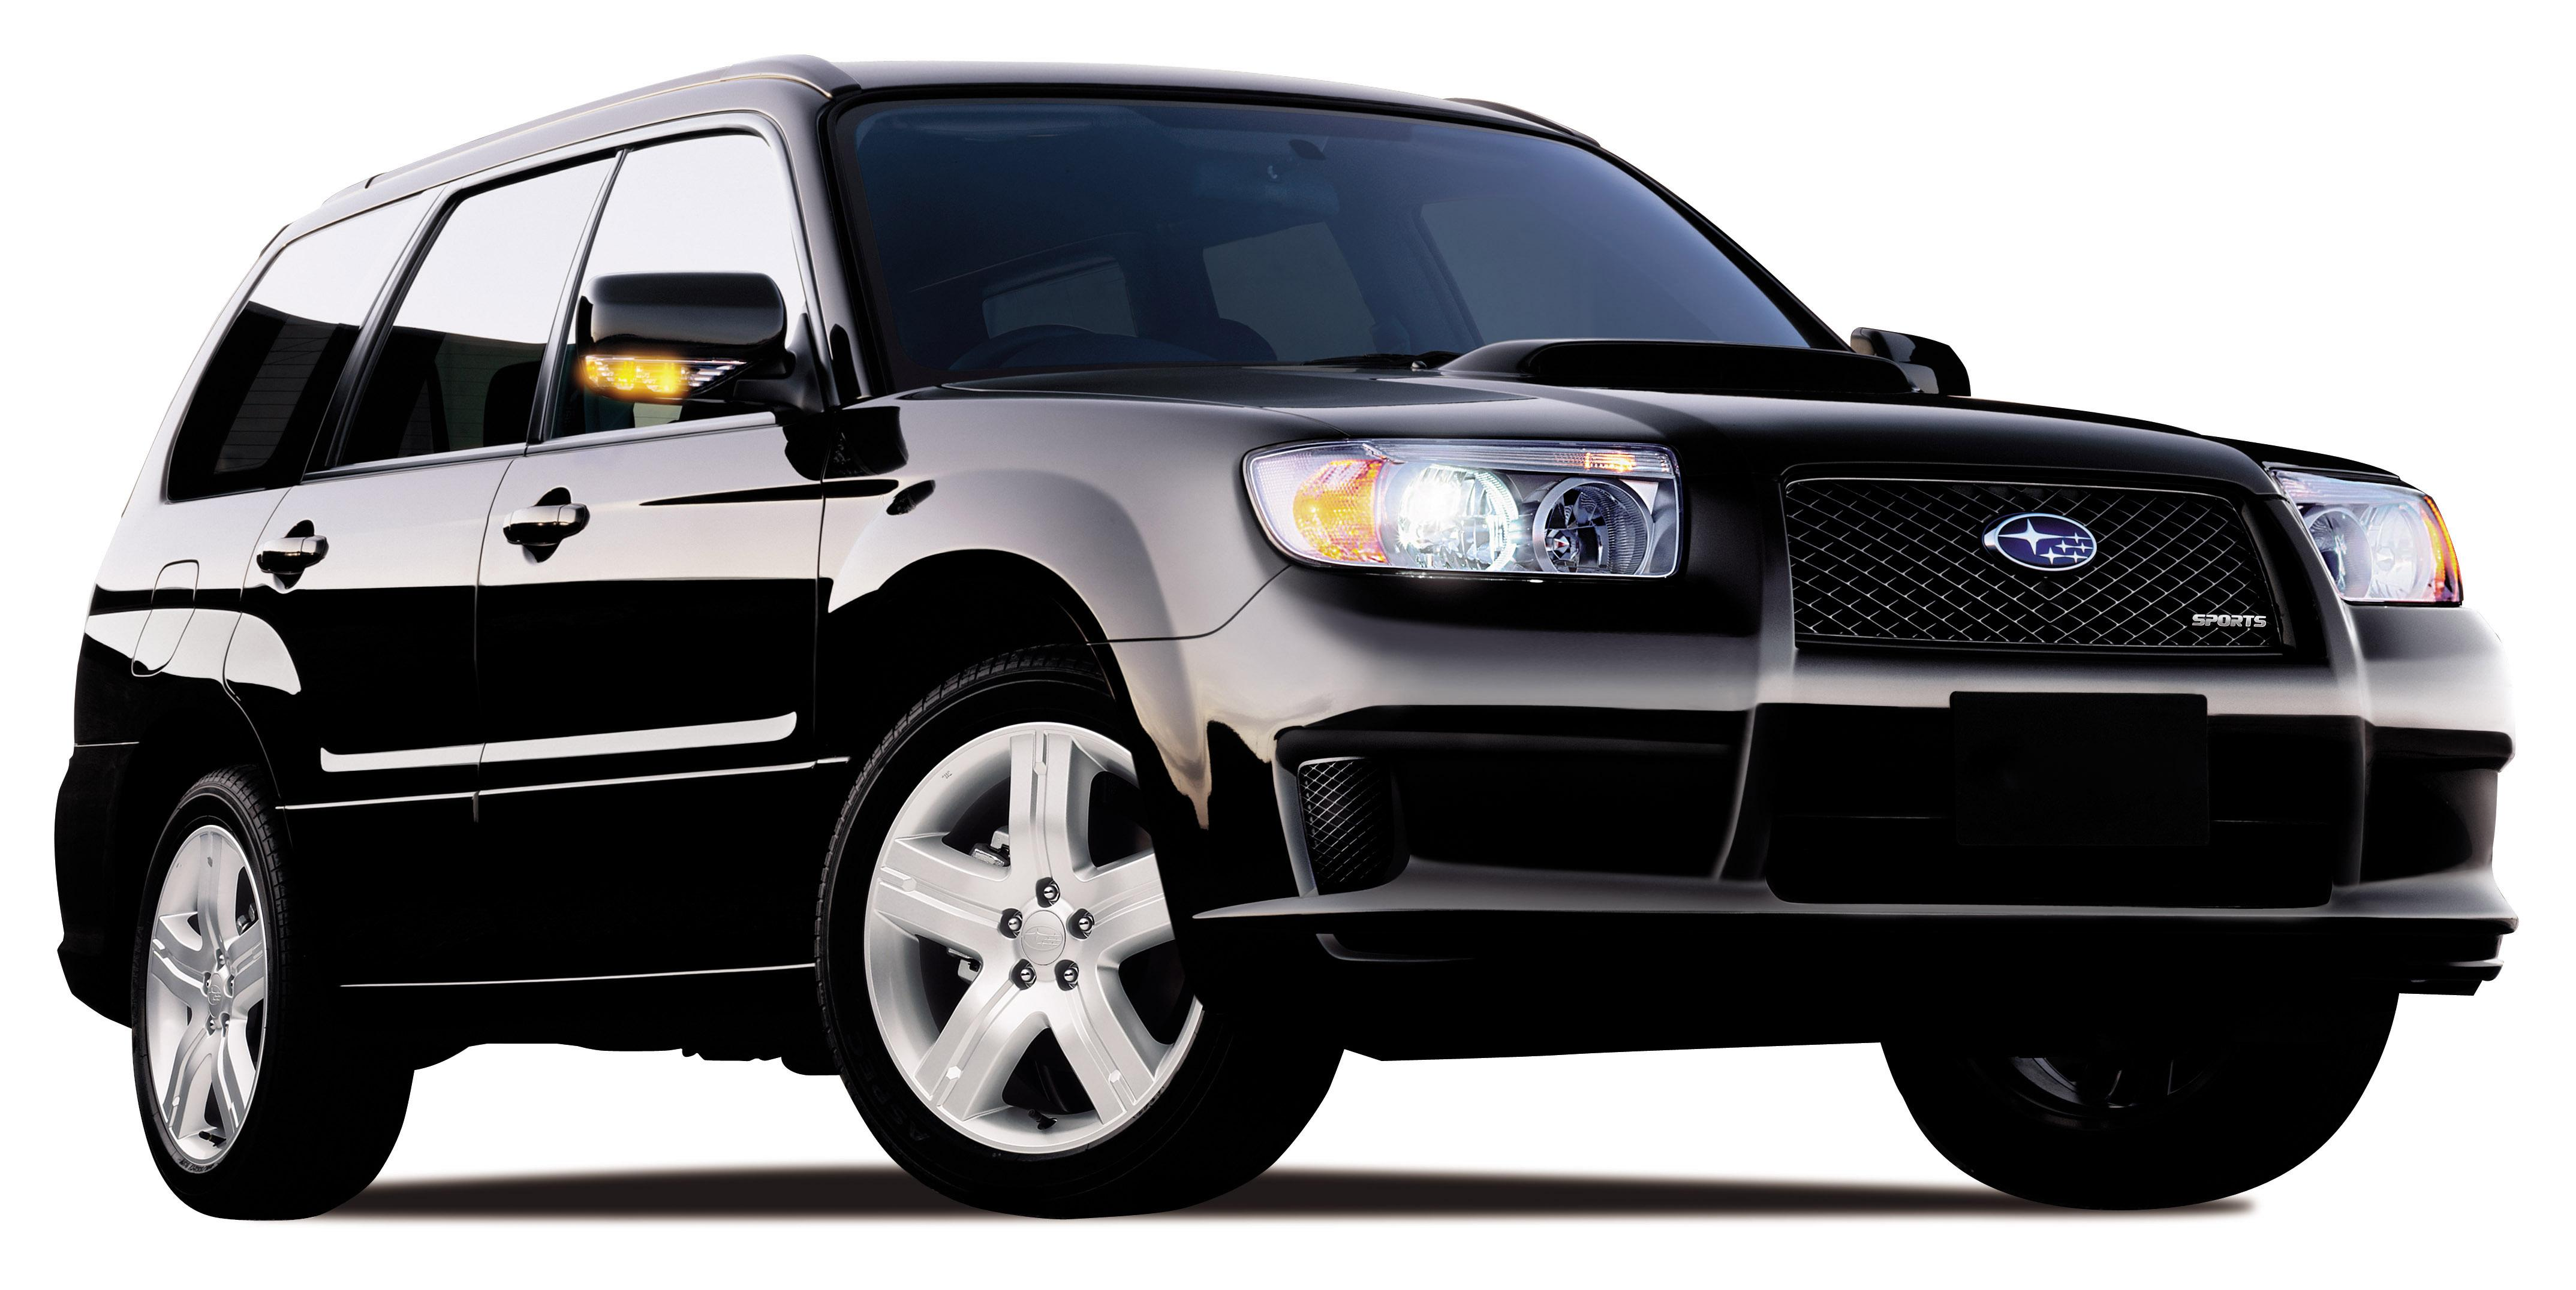 2007 Subaru Forester Sports | Top Speed